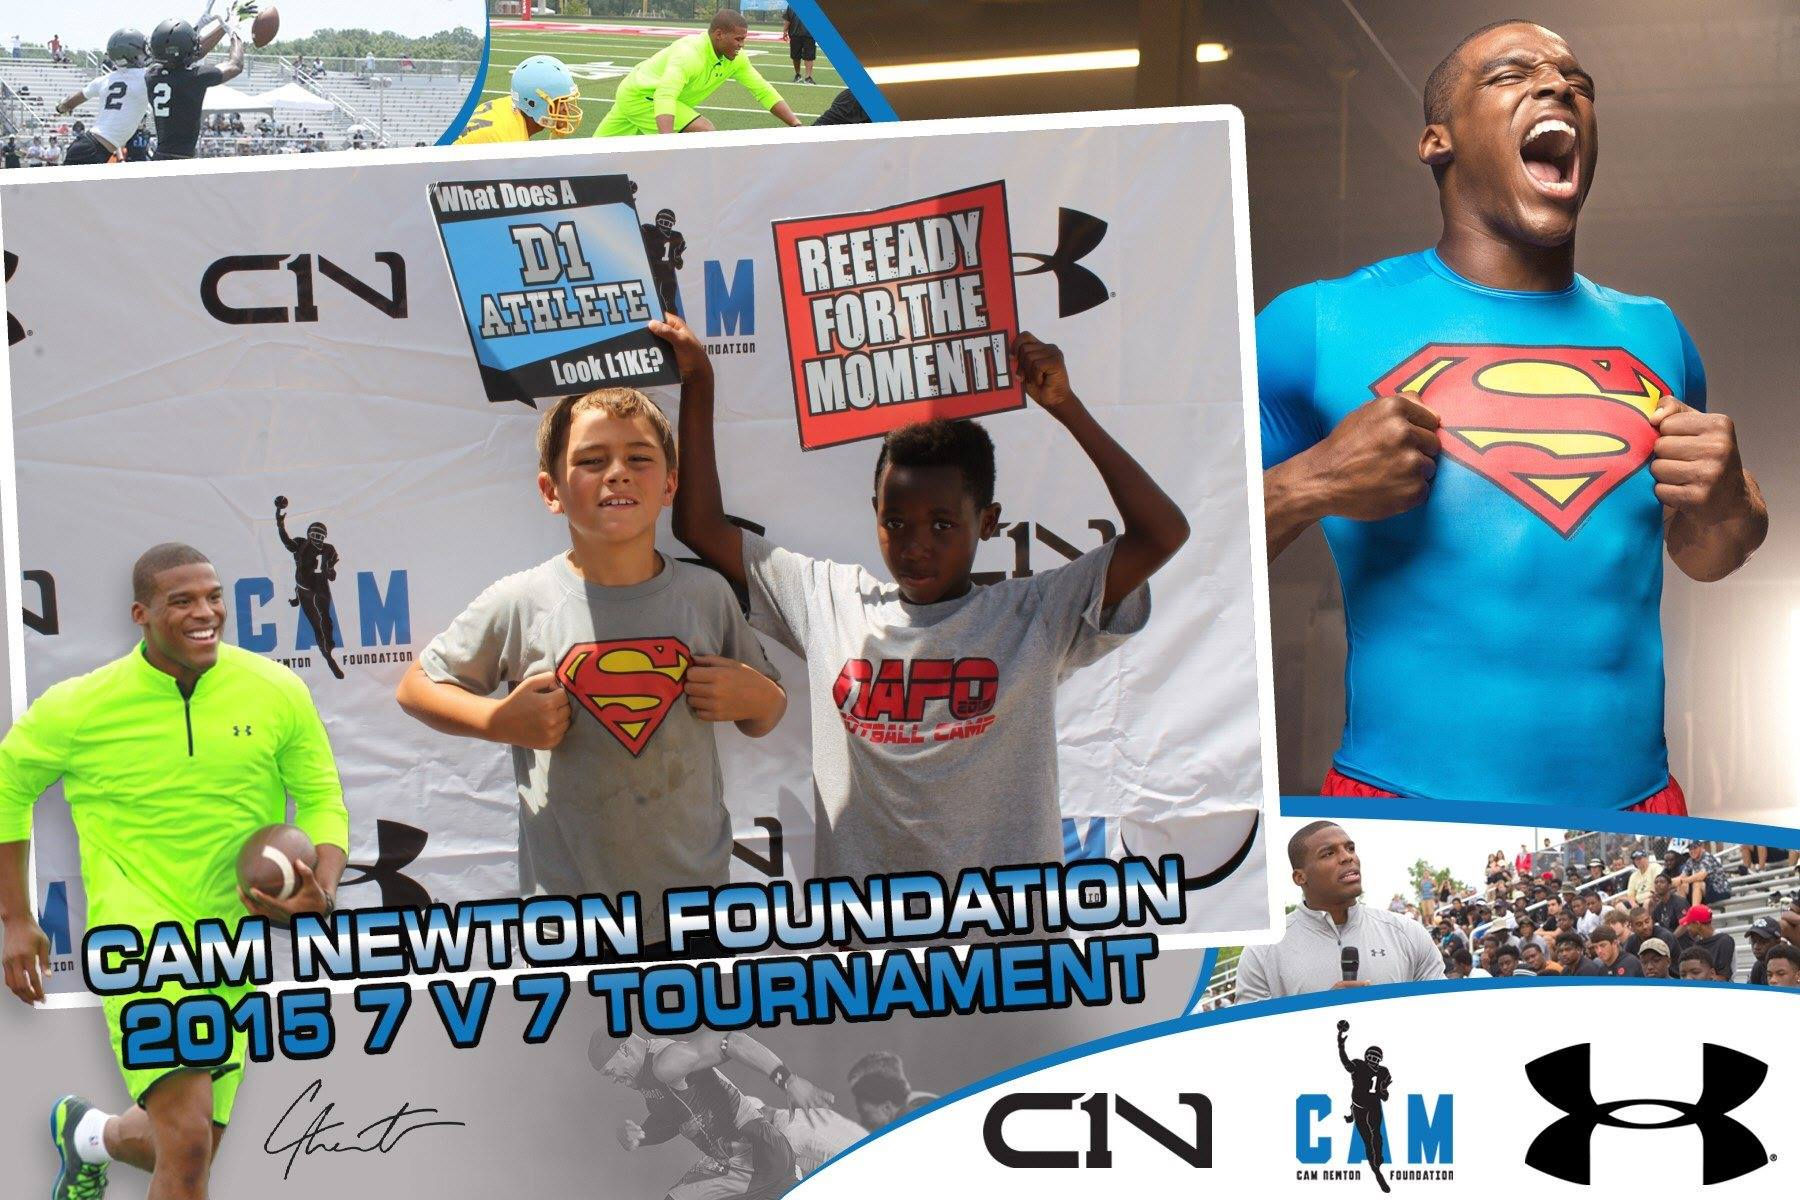 Under Armour & C1N 7v7 Championship